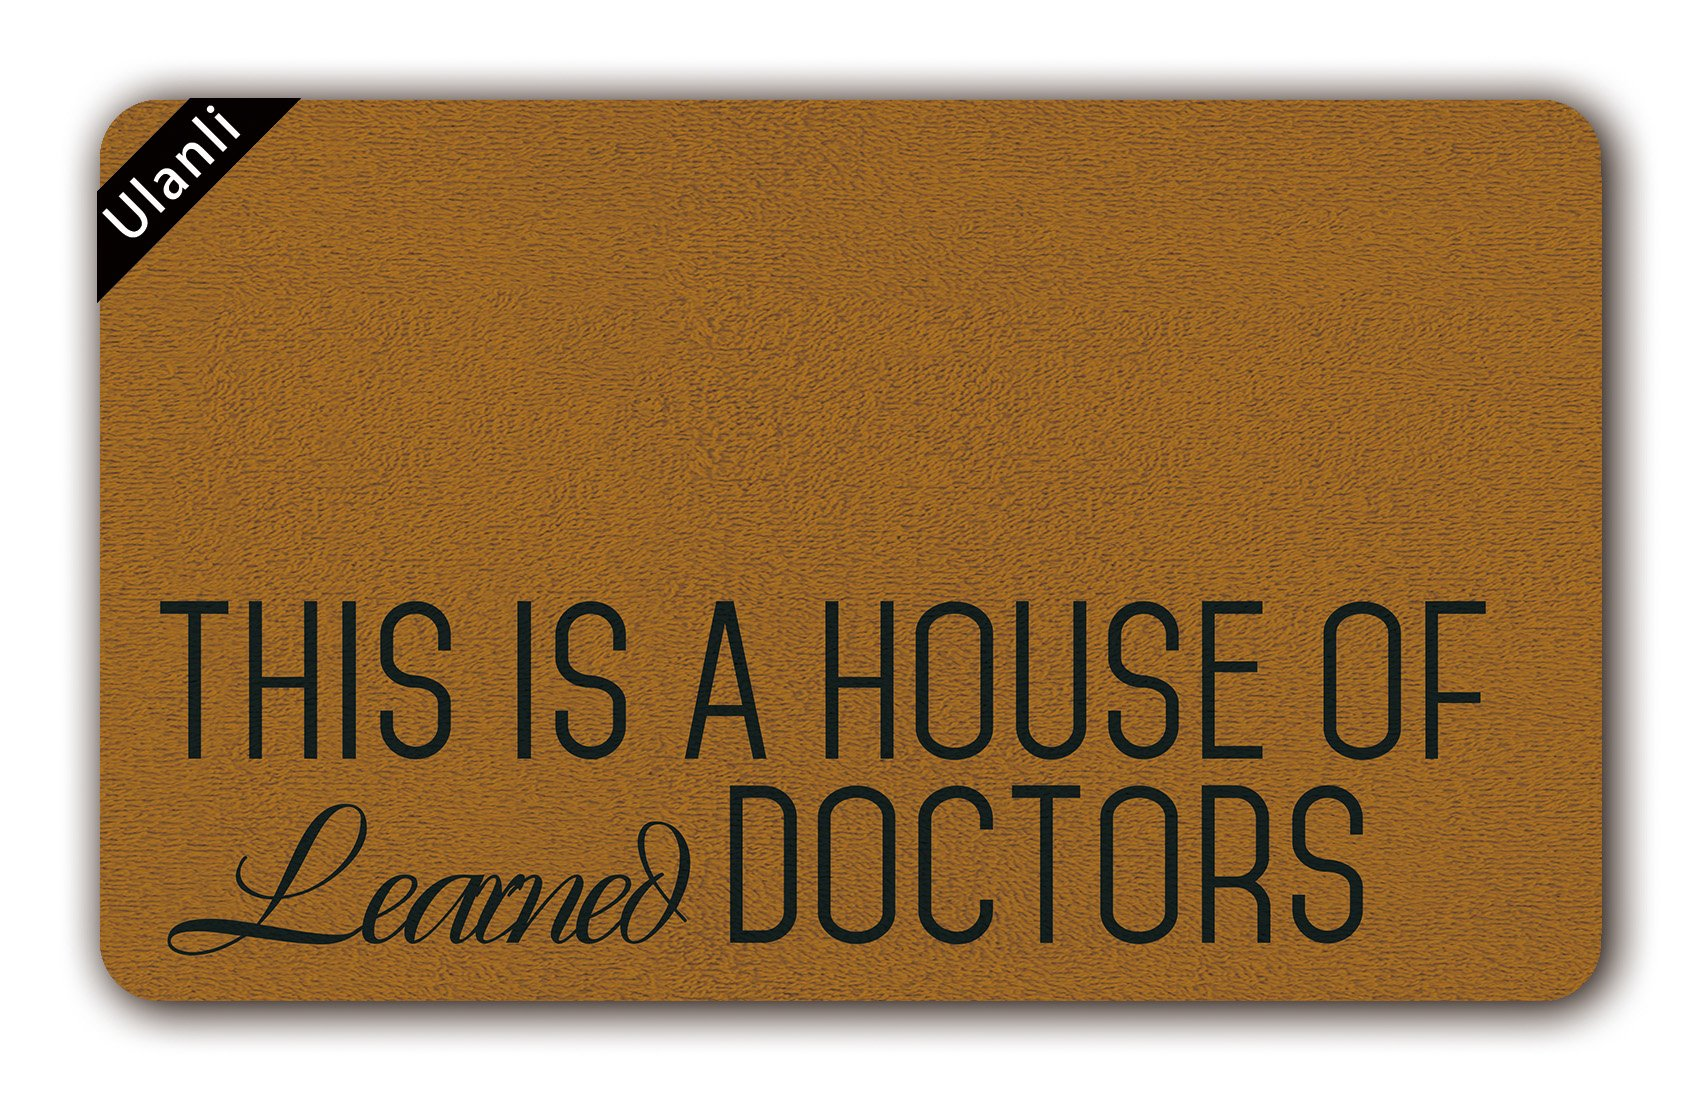 UlanLi This Is A House Of Learned Doctors Doormat Funny Doormat Step Brothers Movie Quote Decor Housewarming Front Porch Gift Coir 18 x 30 Entrance Floor Mat